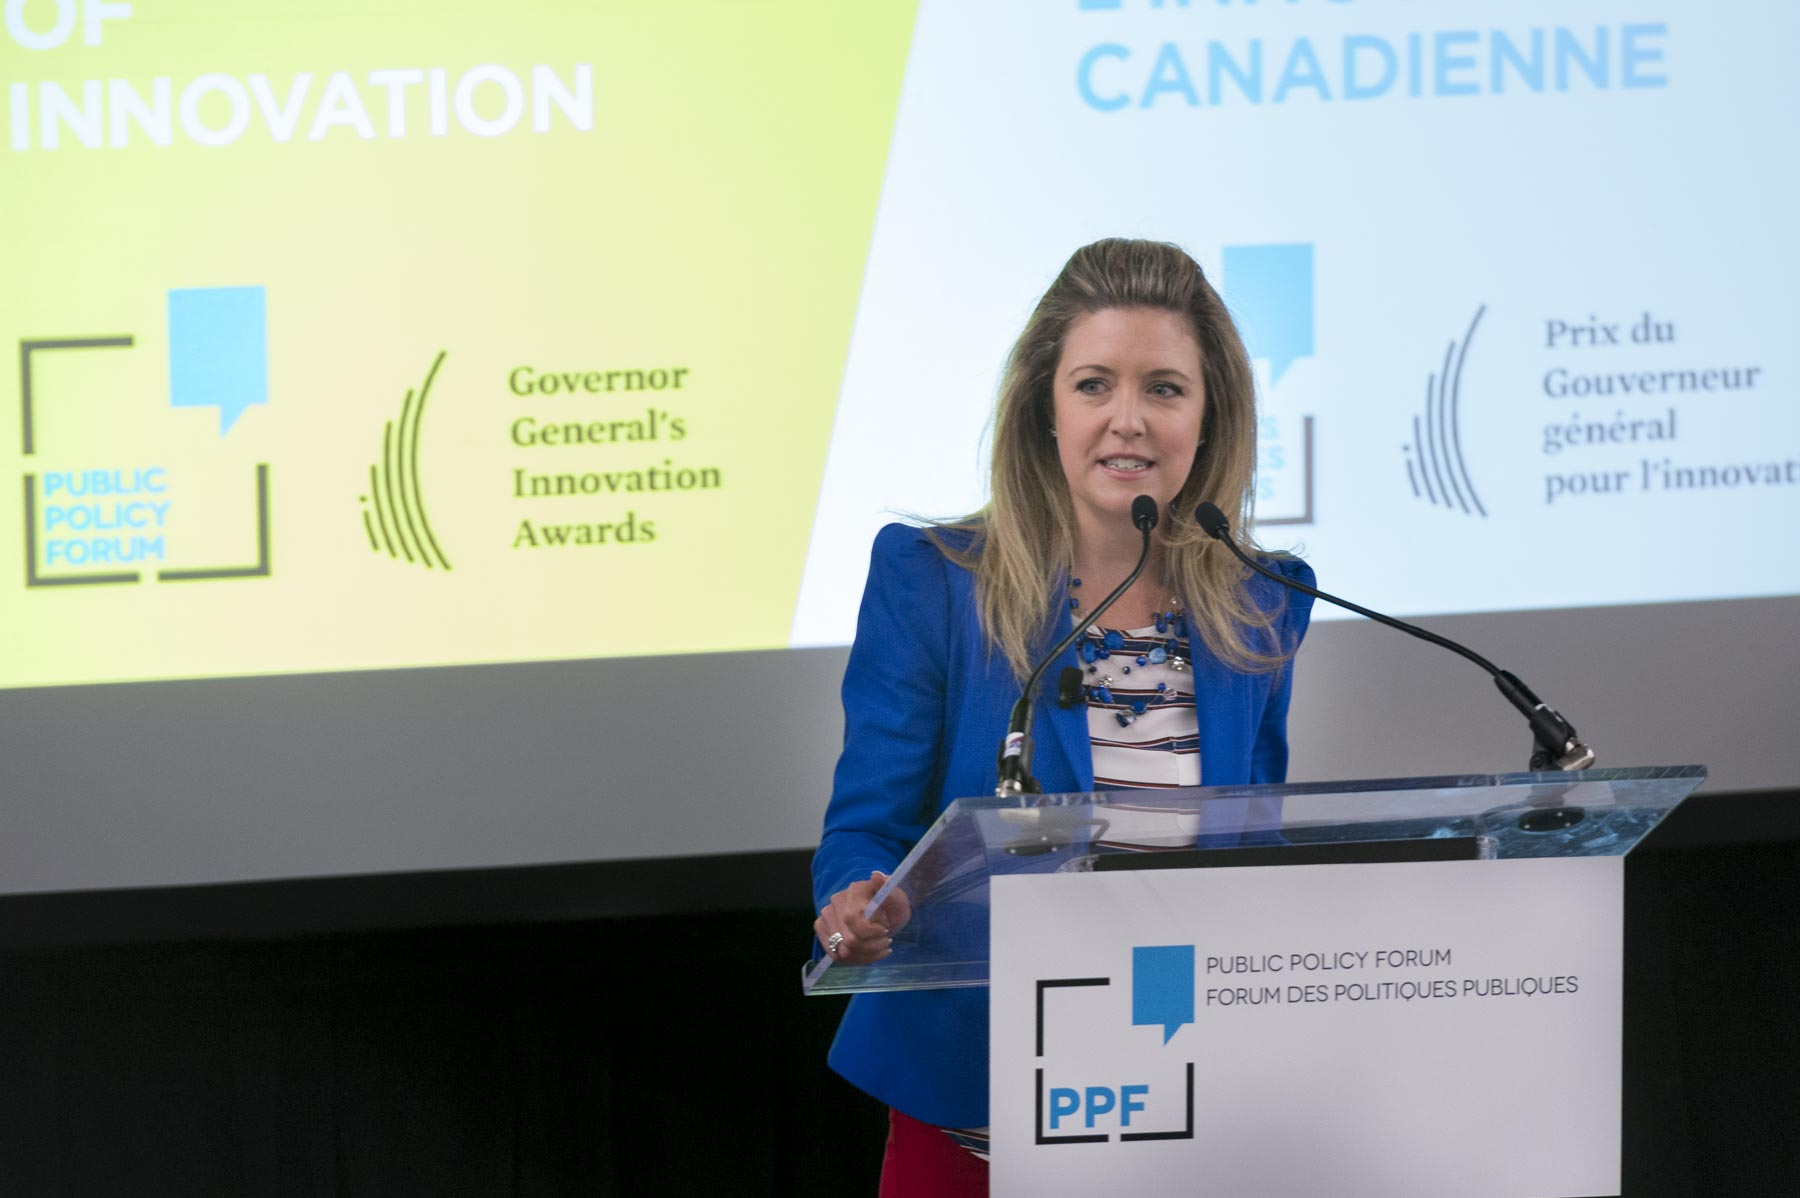 Catherine Clark moderated a conversation with the recipients of the 2017 Governor General's Innovation Awards.